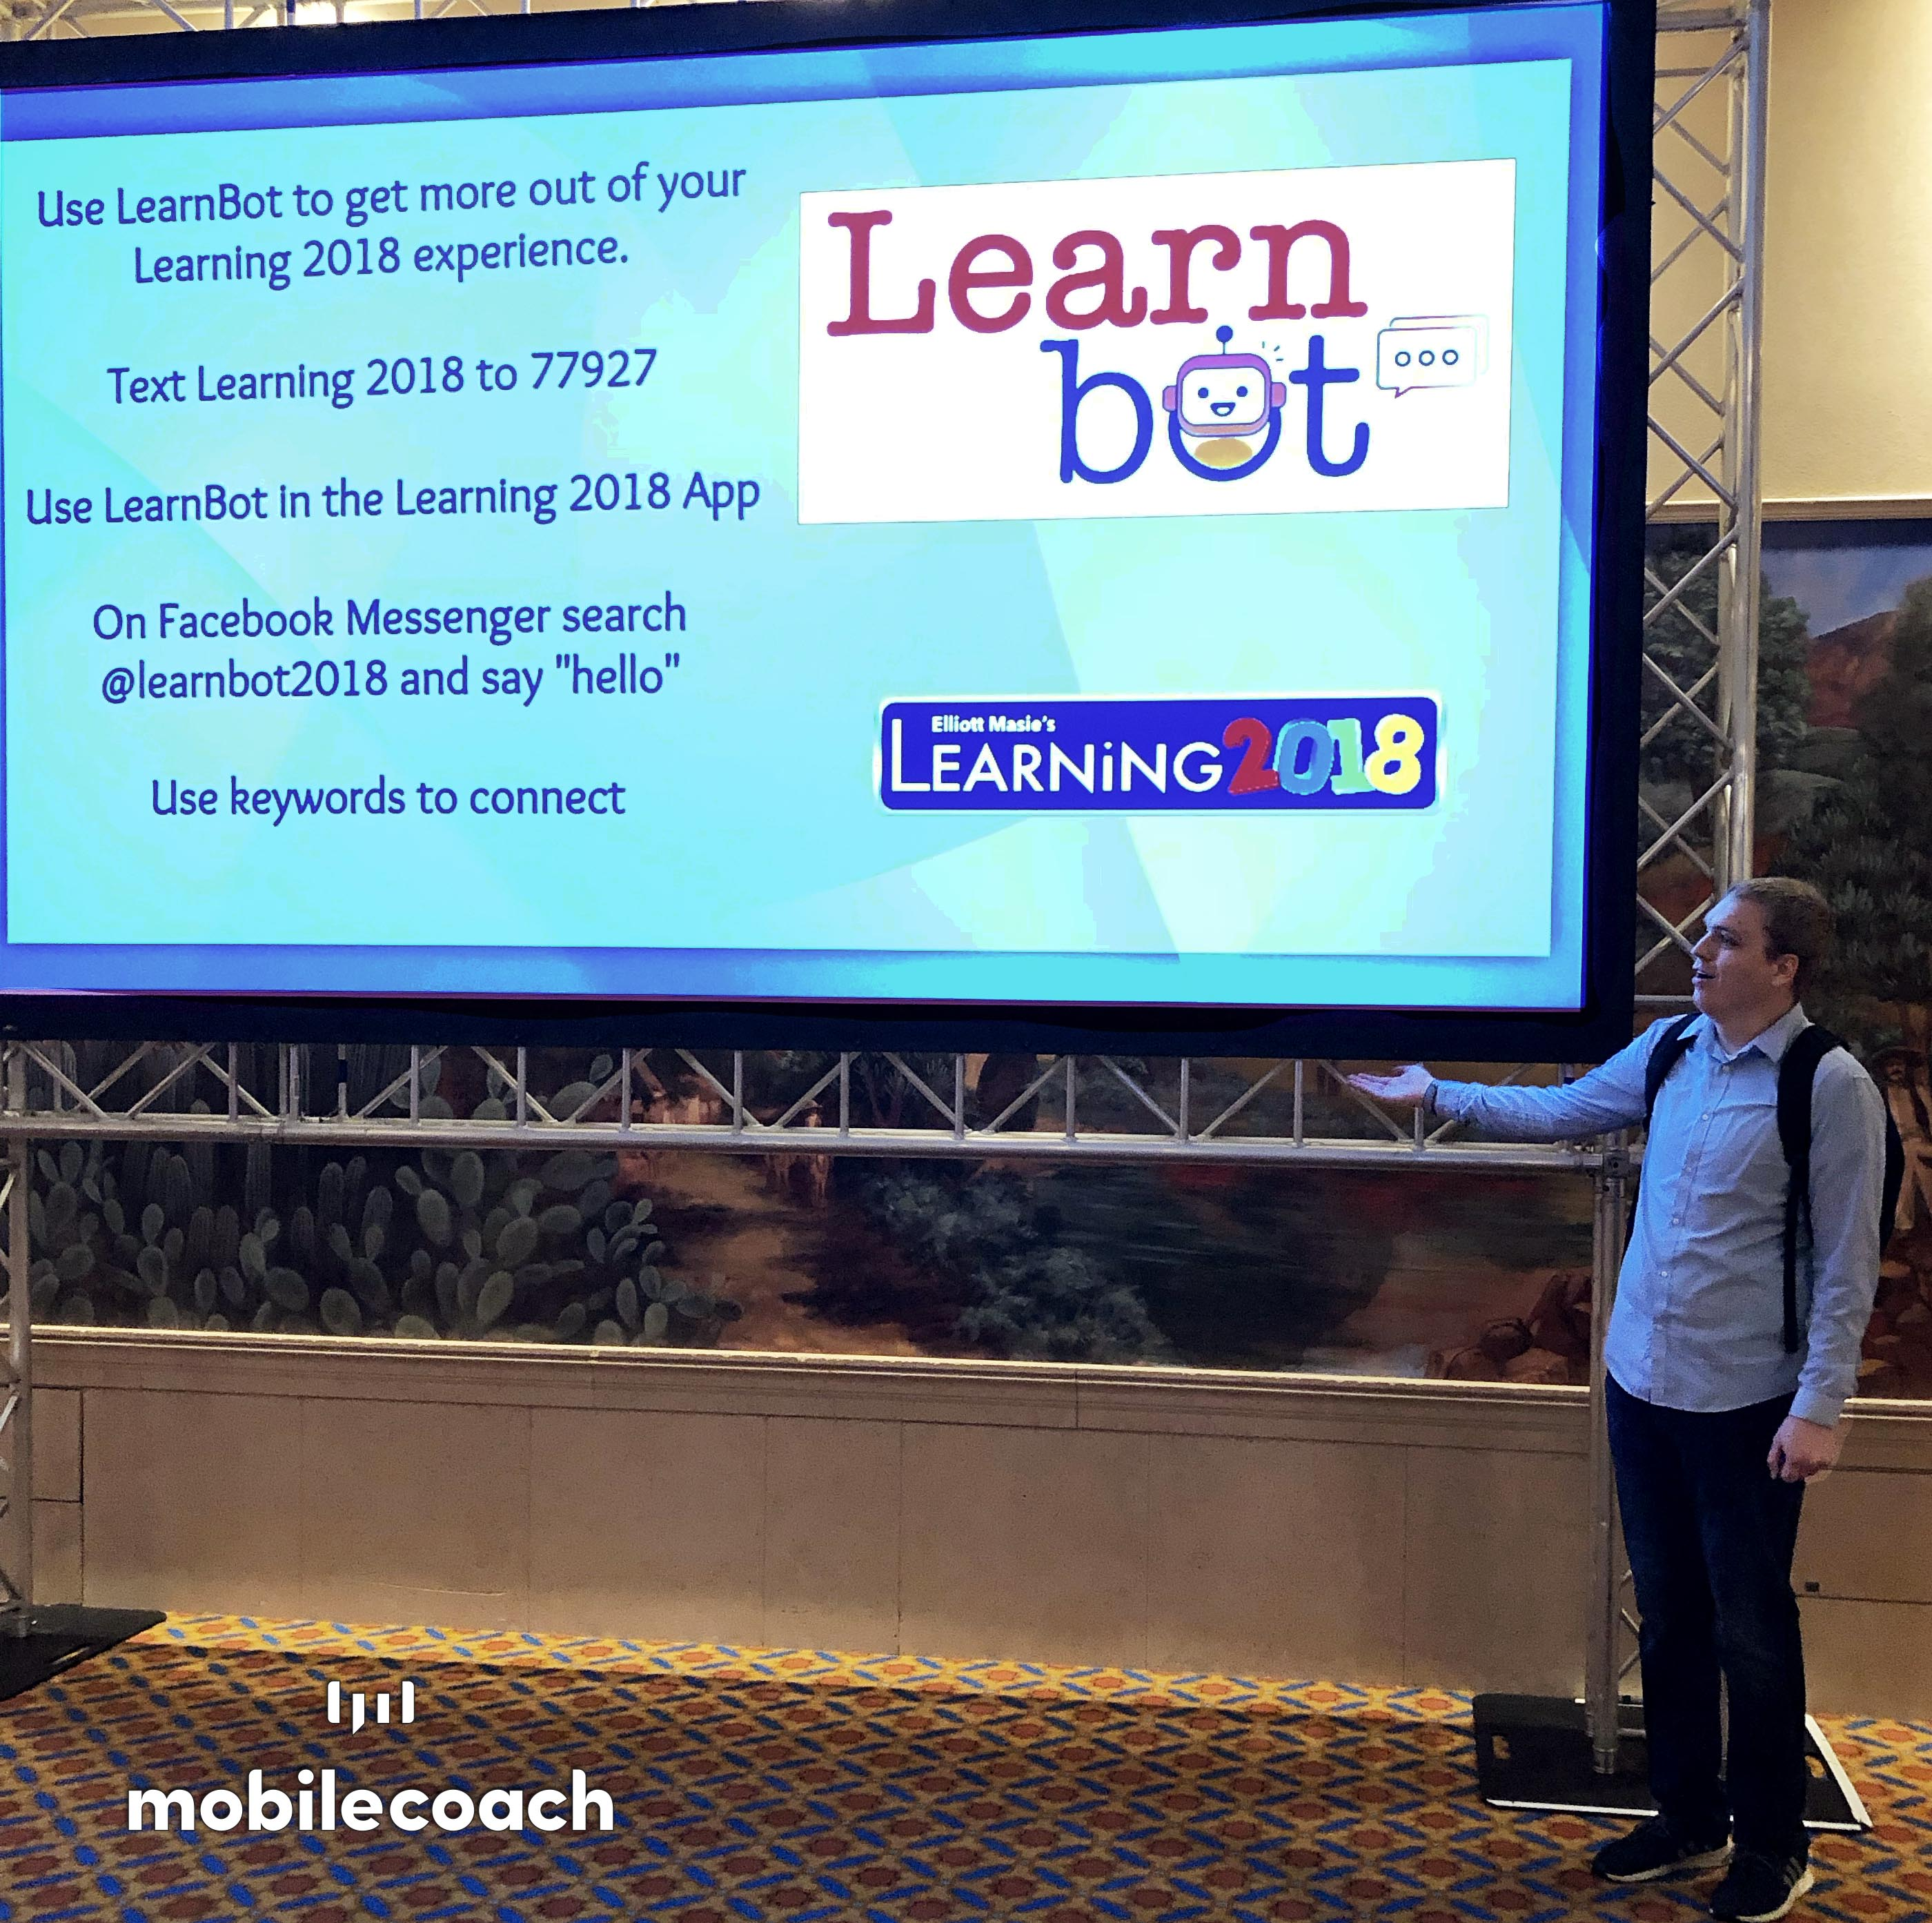 Mobile Coach at Learning 2018 with LearnBot